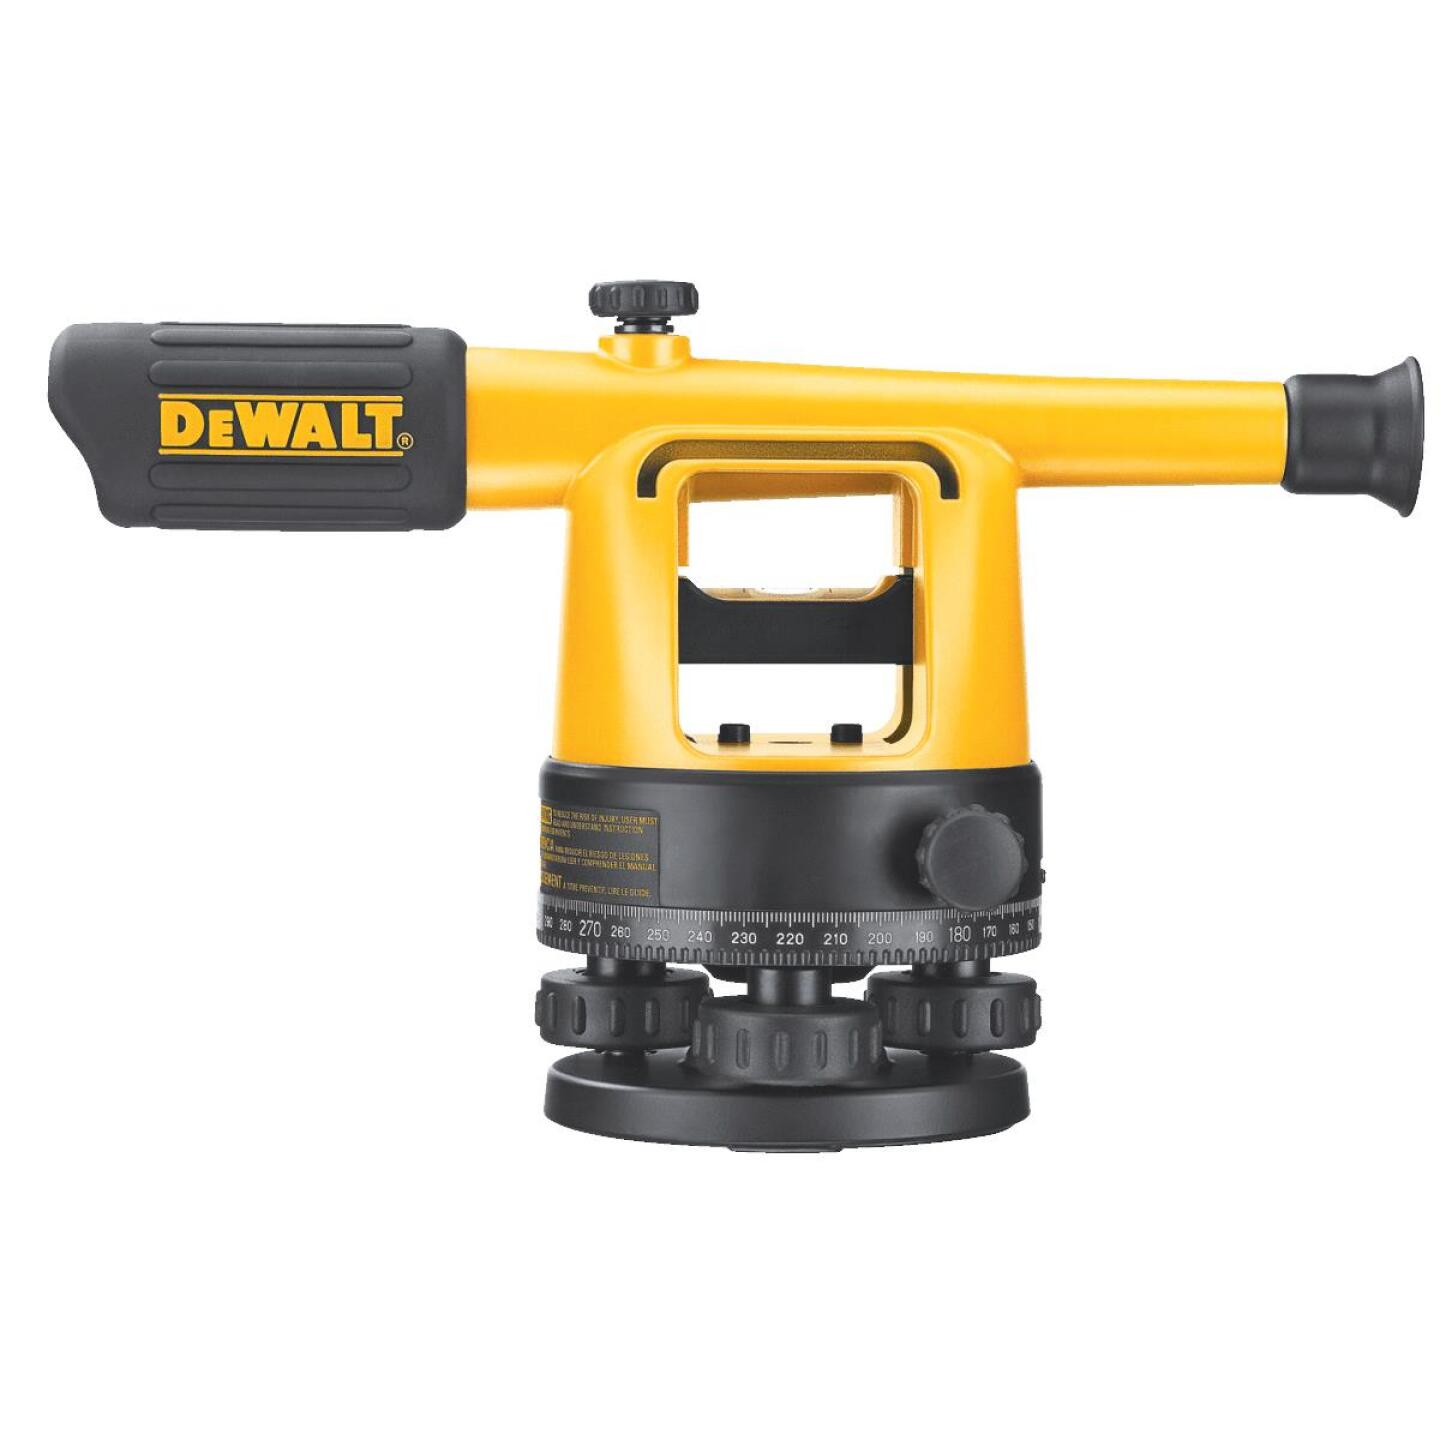 Dewalt 20x Magnifying Manual Sight Level Image 1